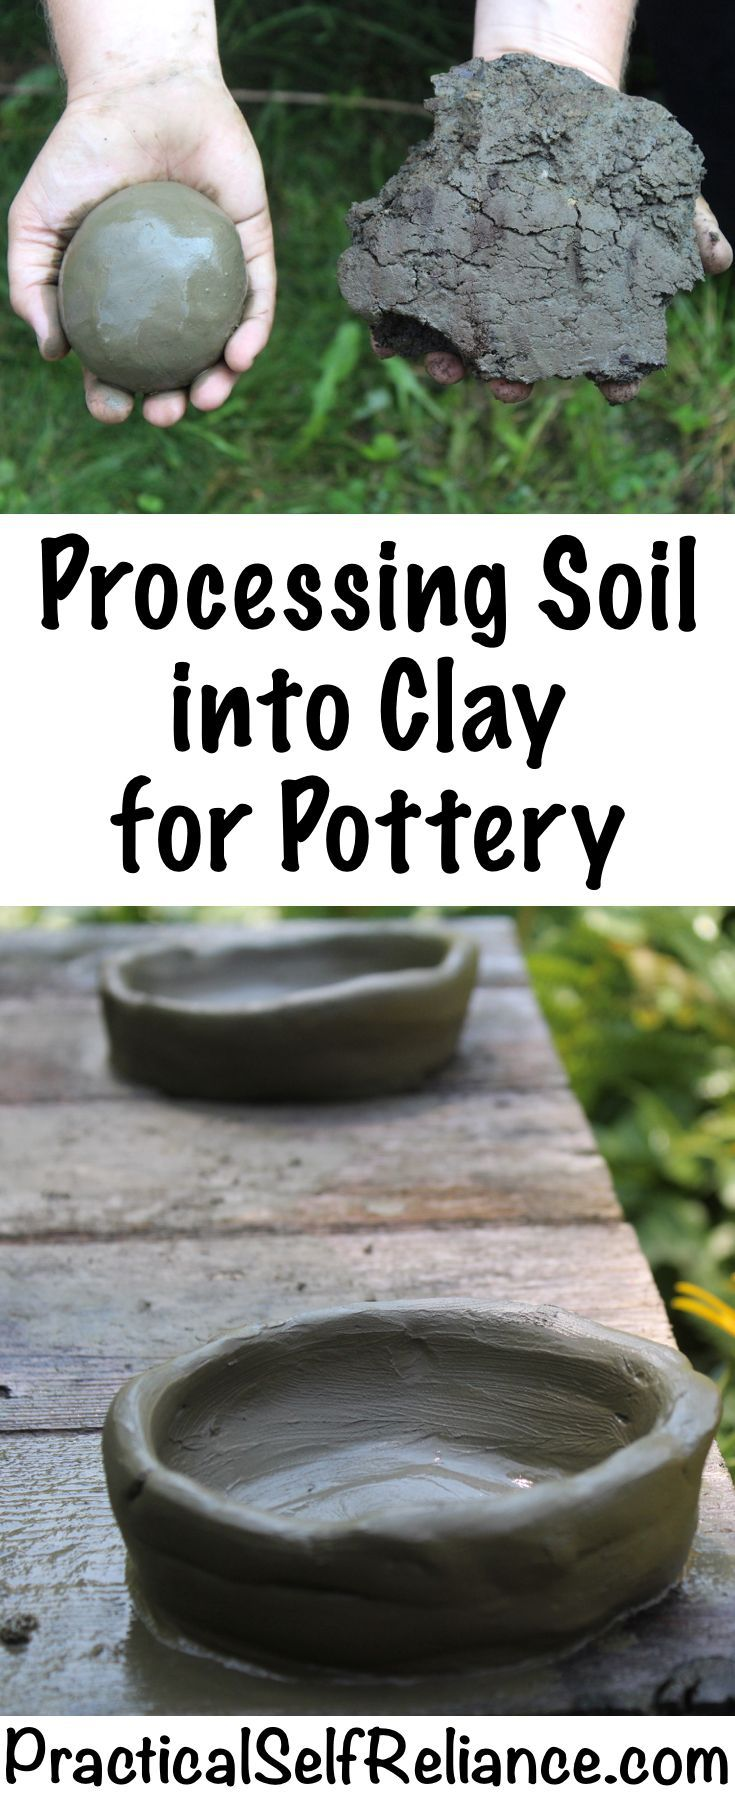 How To Process Soil Into Clay For Pottery Diy Pottery Wine Bottle Diy Crafts How To Make Clay